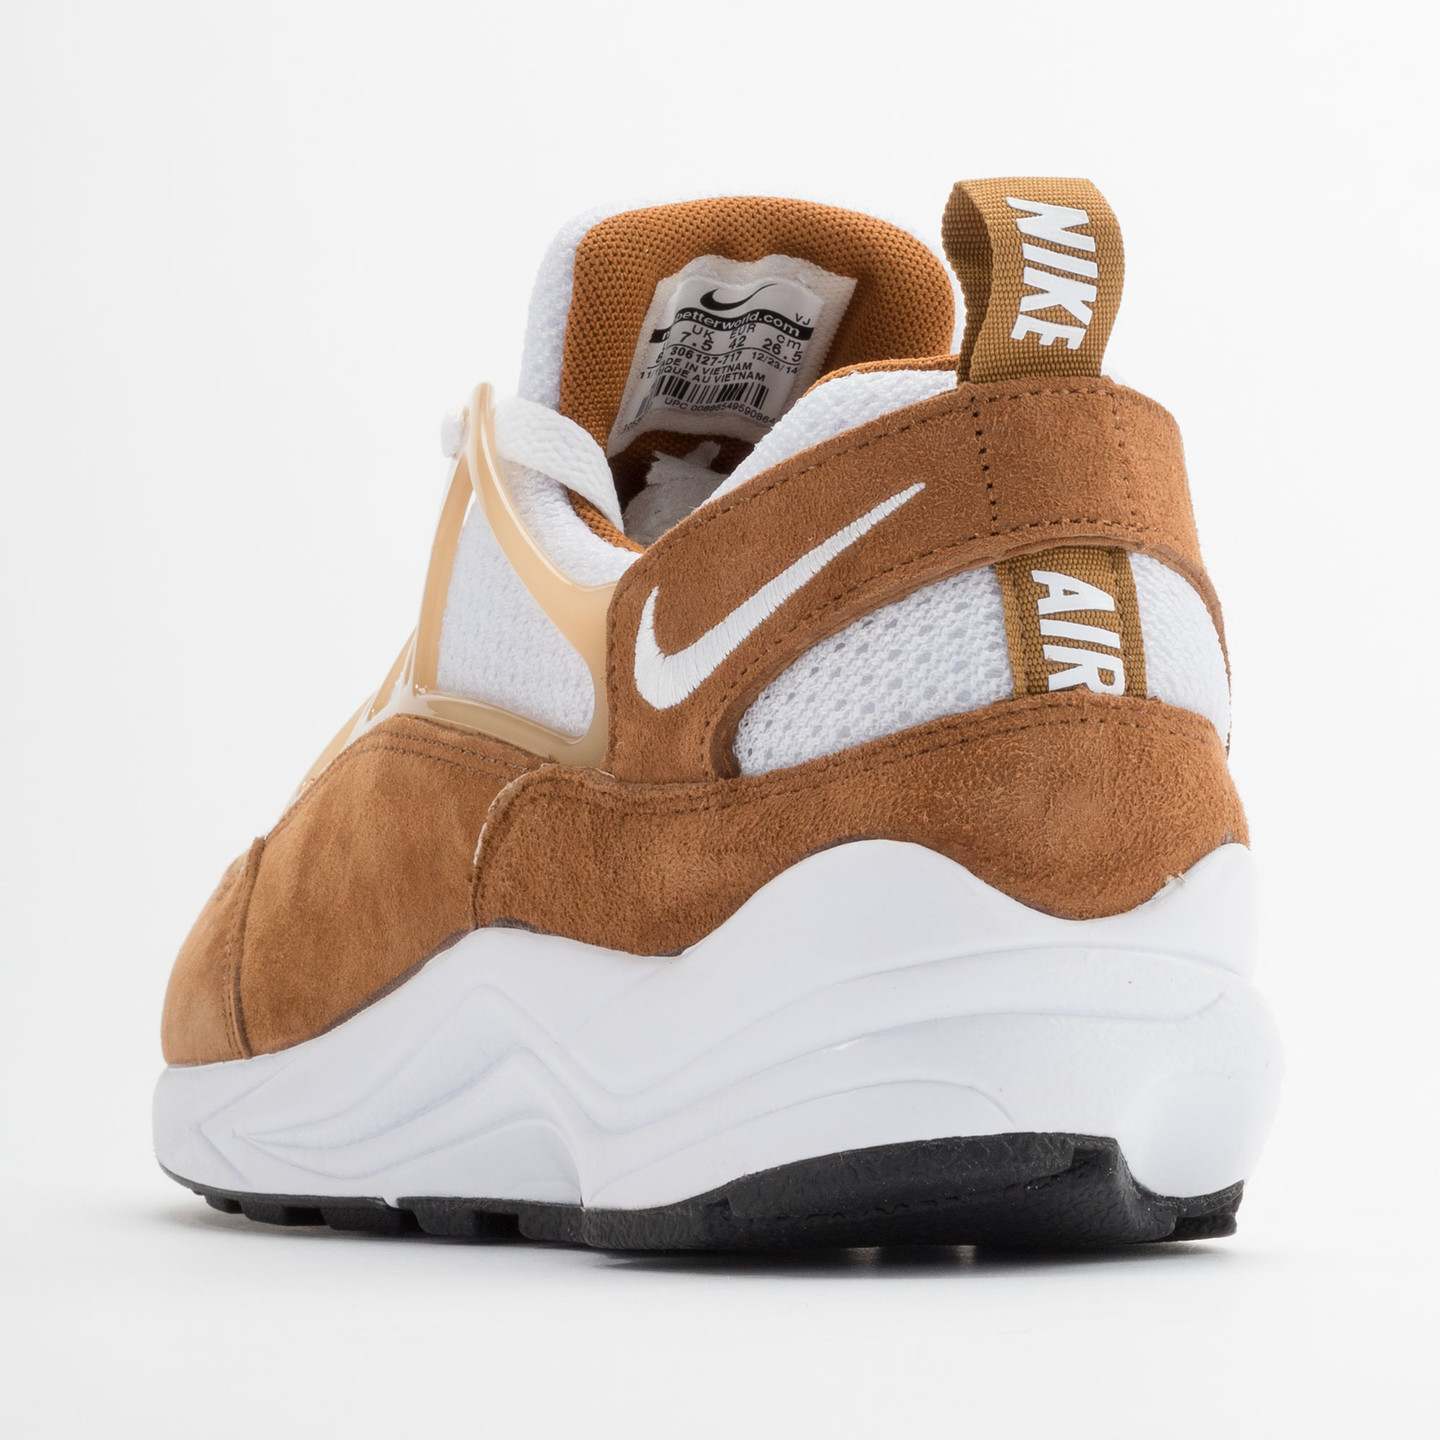 Nike Air Huarache Light Dark Curry / White-Wheat 306127-717-44.5